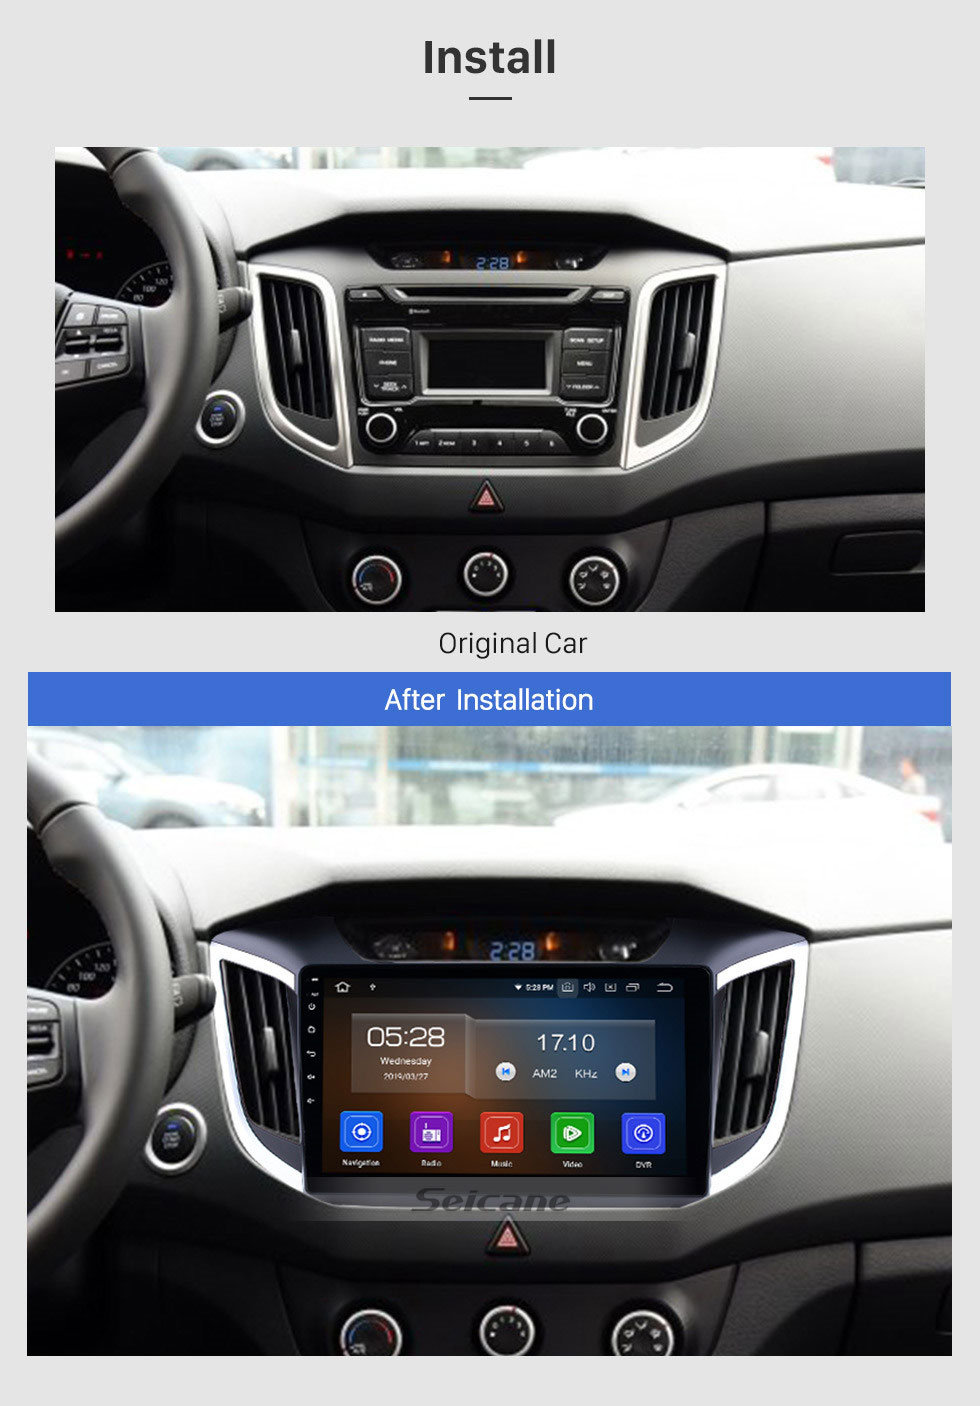 Seicane 10.1 inch Android 9.0 1024*600 Touchscreen Radio for 2014 2015 HYUNDAI IX25 Creta with Bluetooth GPS Navigation 4G WIFI Steering Wheel Control OBD2 Mirror Link